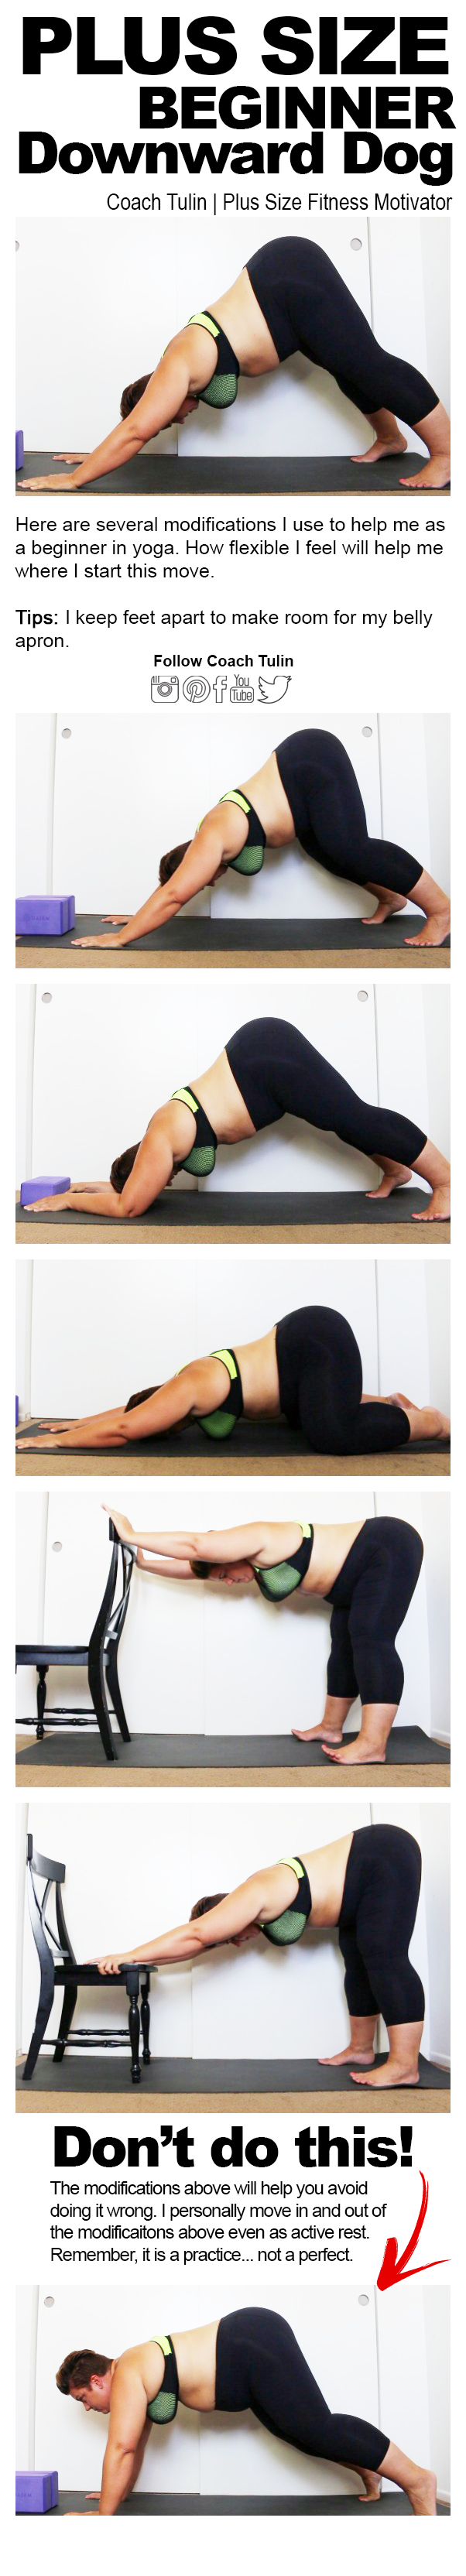 Downward Dog Modifications